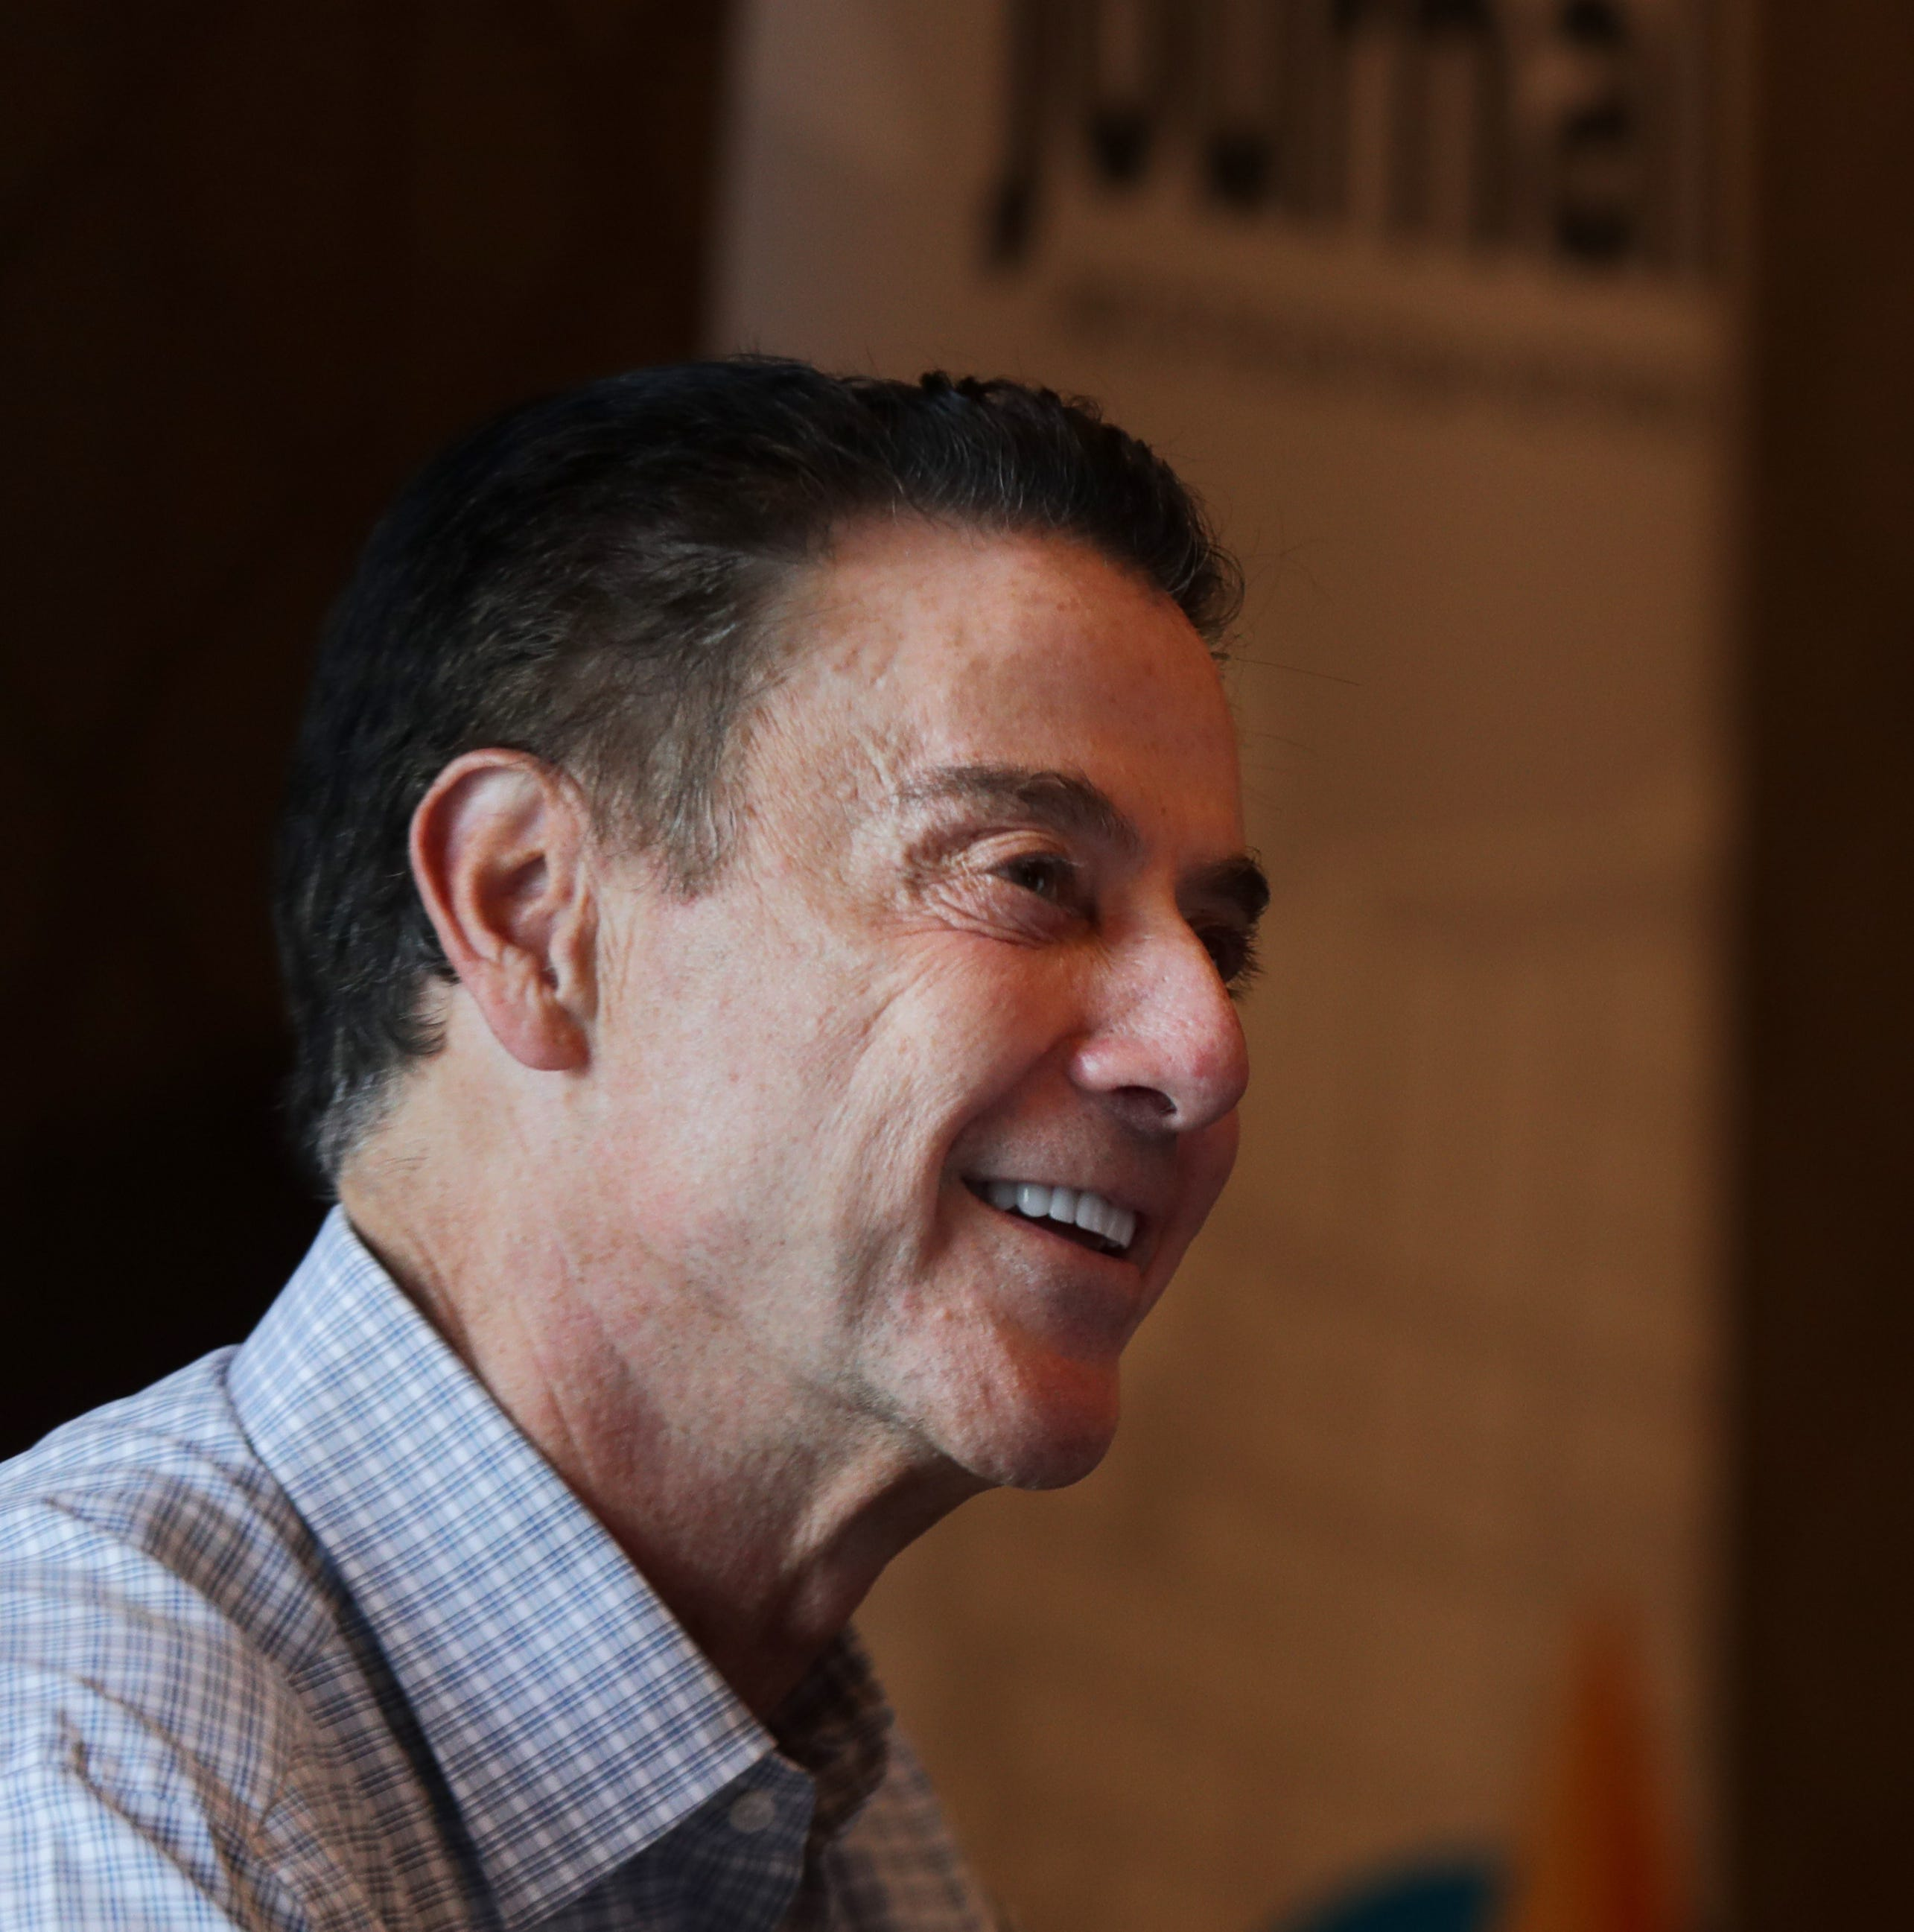 Judge orders Rick Pitino to turn over private investigator's documents